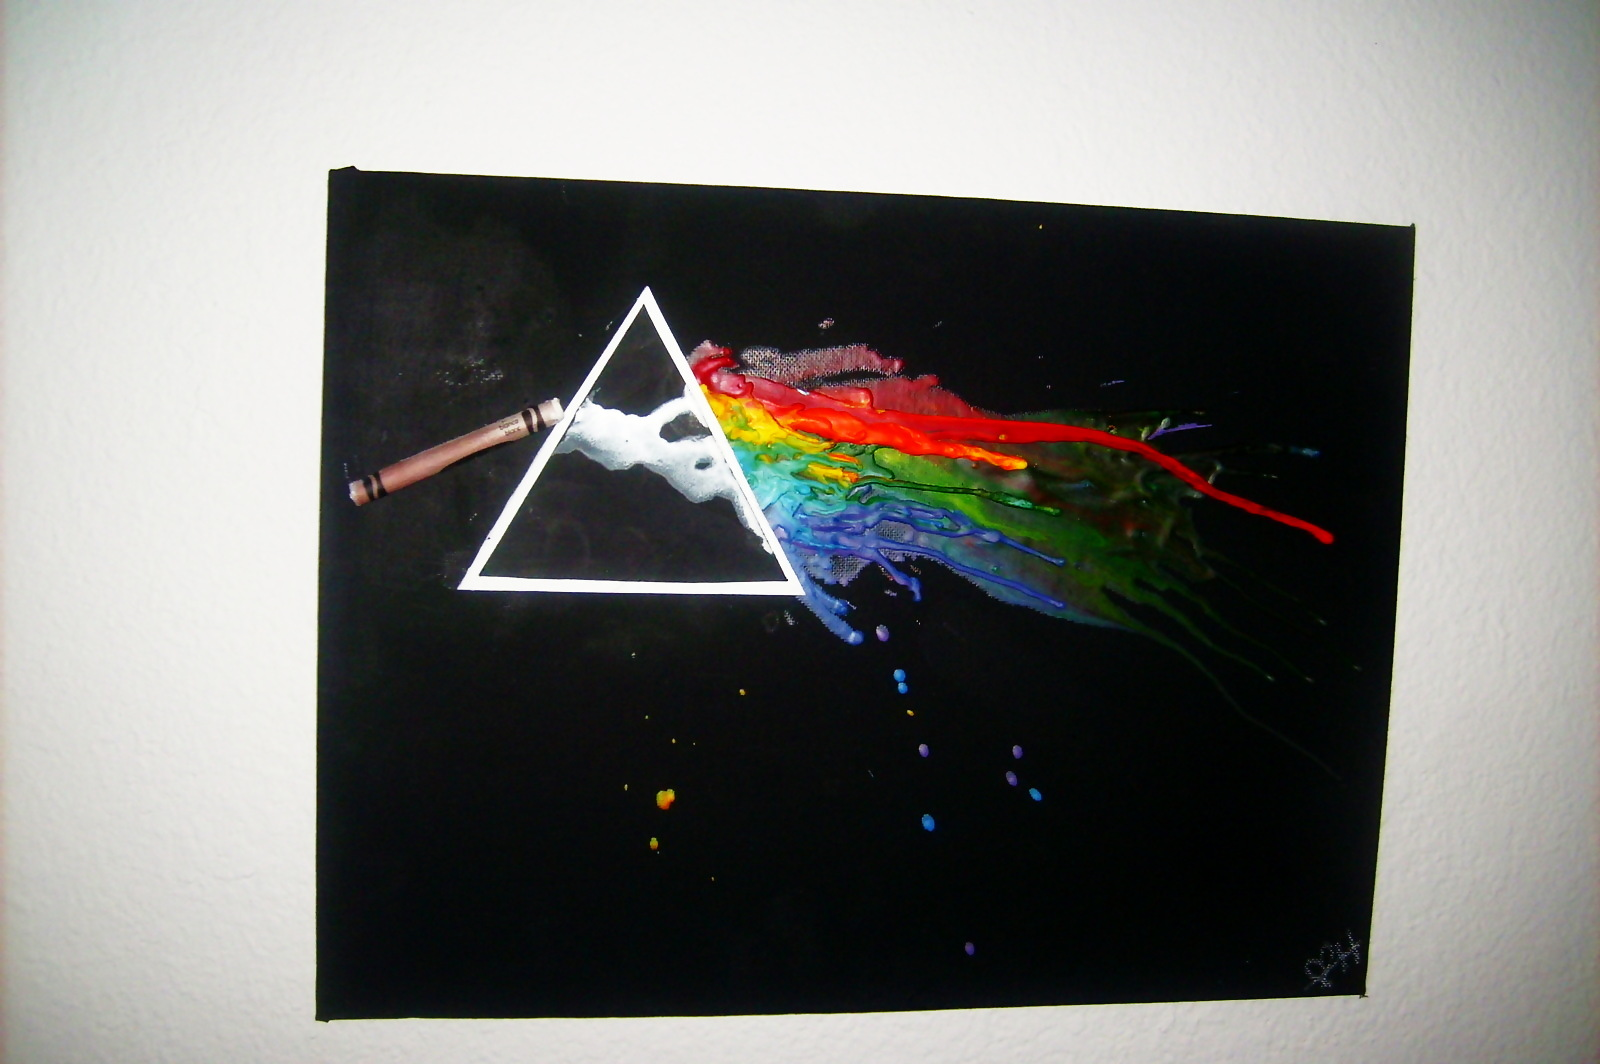 Pink Floyd Inspired Melted Crayon Art A Piece Of Melting And Decorating On Cut Out Keep With Canvas